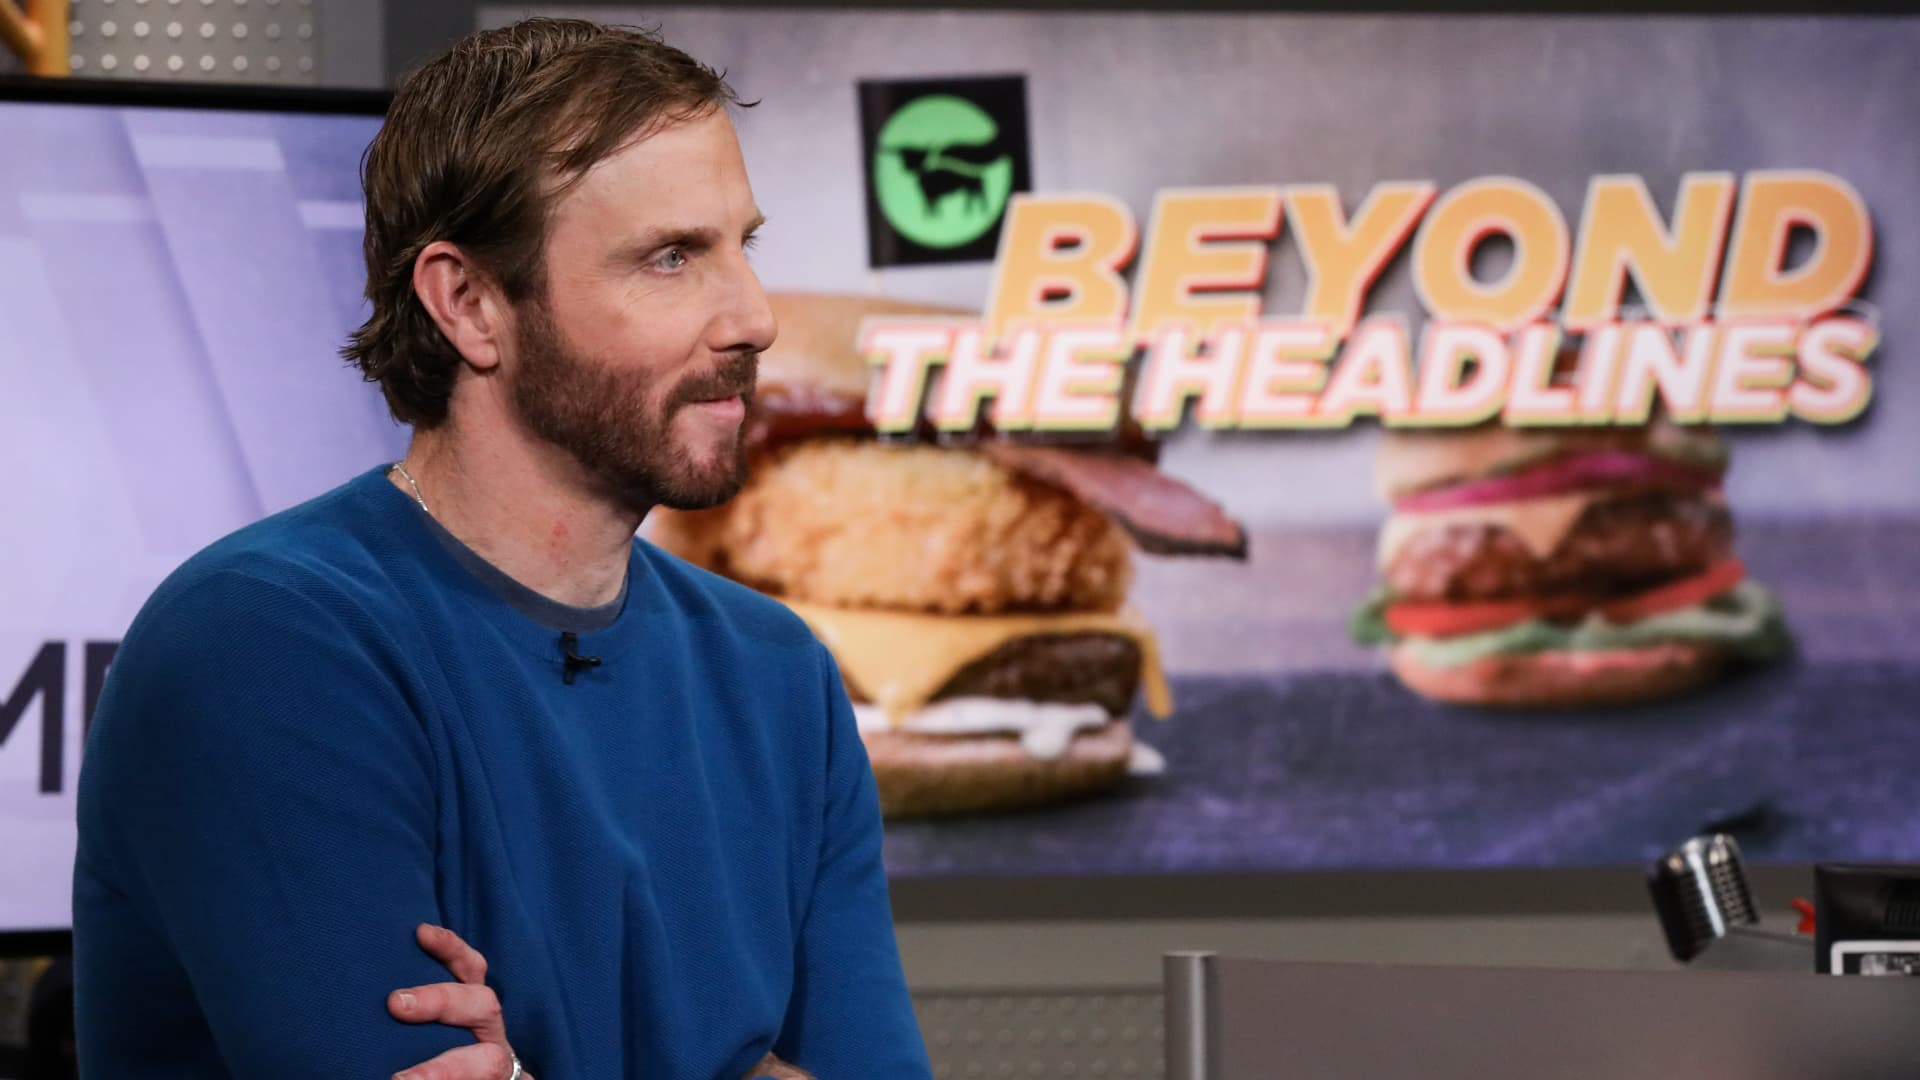 Ethan Brown, founder, president and CEO of Beyond Meat.